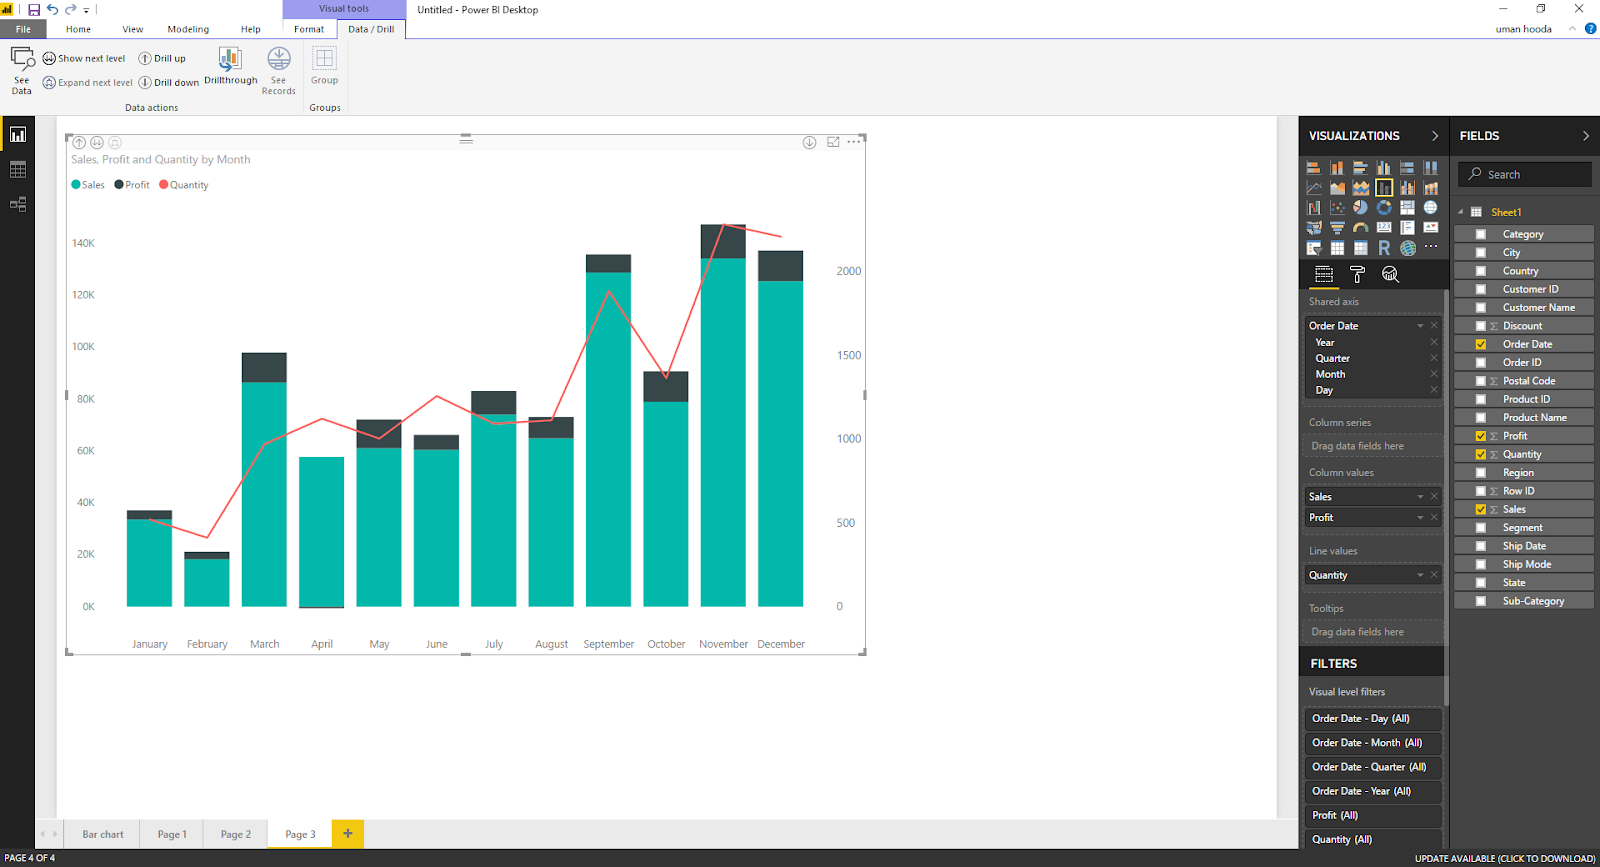 Dual Axis Chart in Microsoft Power BI - Step By Step 51